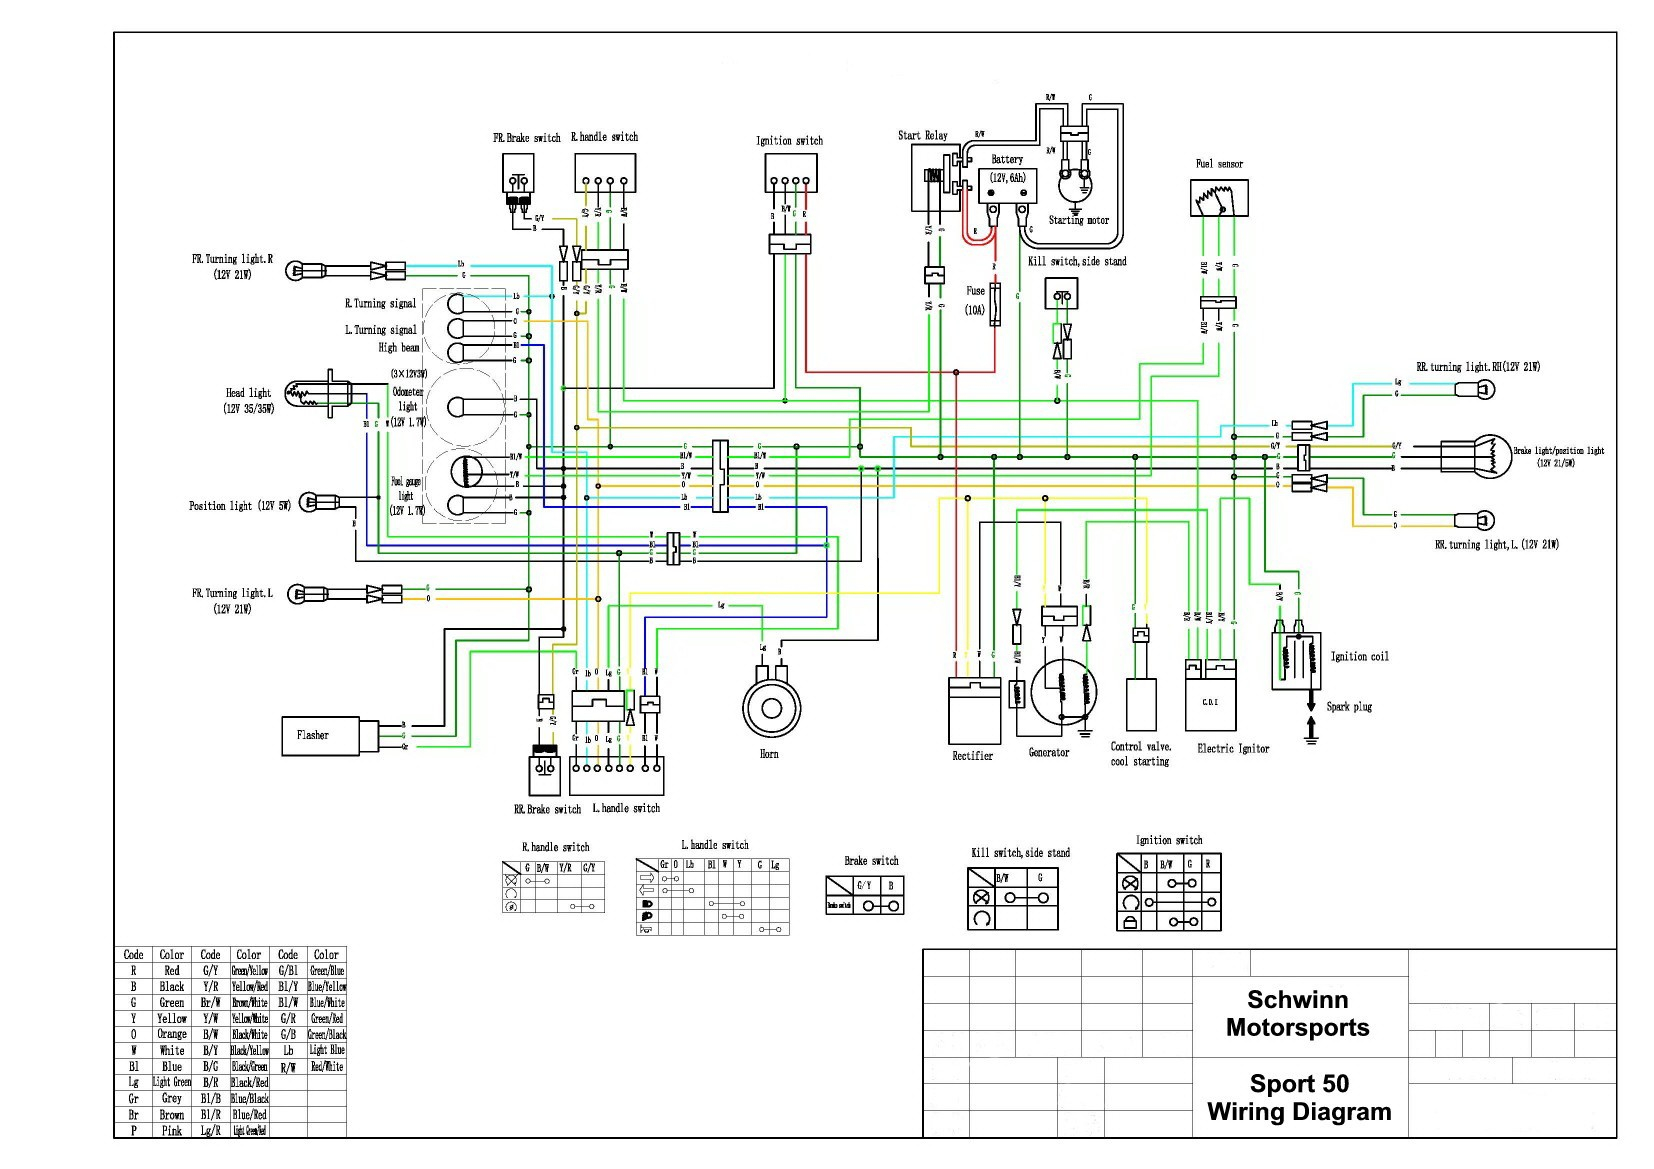 hight resolution of gtx moped wiring diagram wiring diagram gochallenger sport electric scooter wiring diagram wiring diagram gtx moped